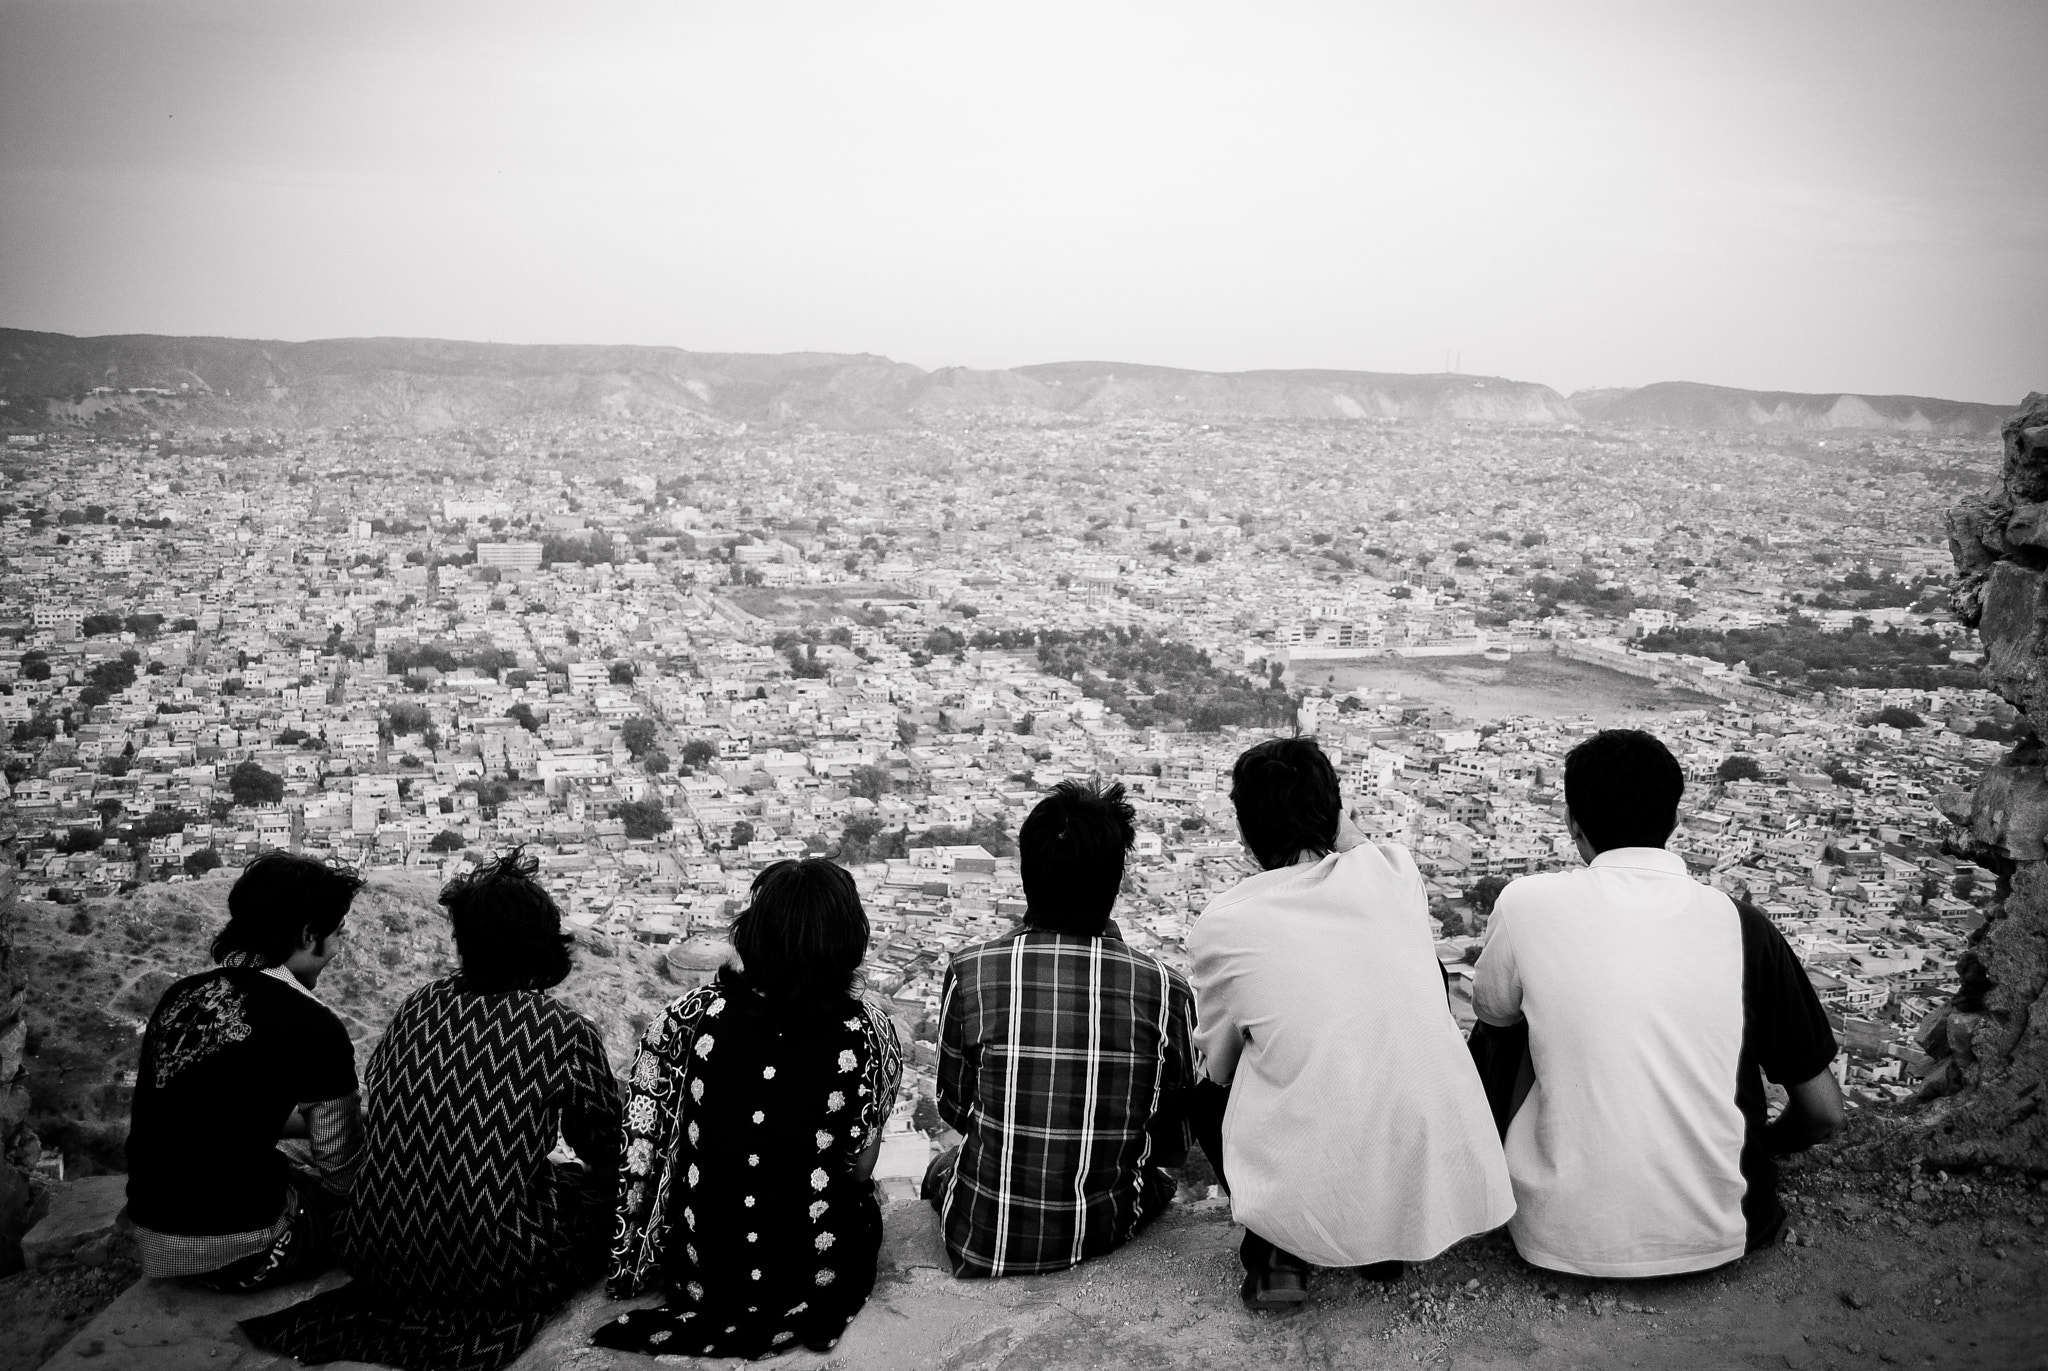 Photograph View of Jaipur by Aaqib Ansari on 500px